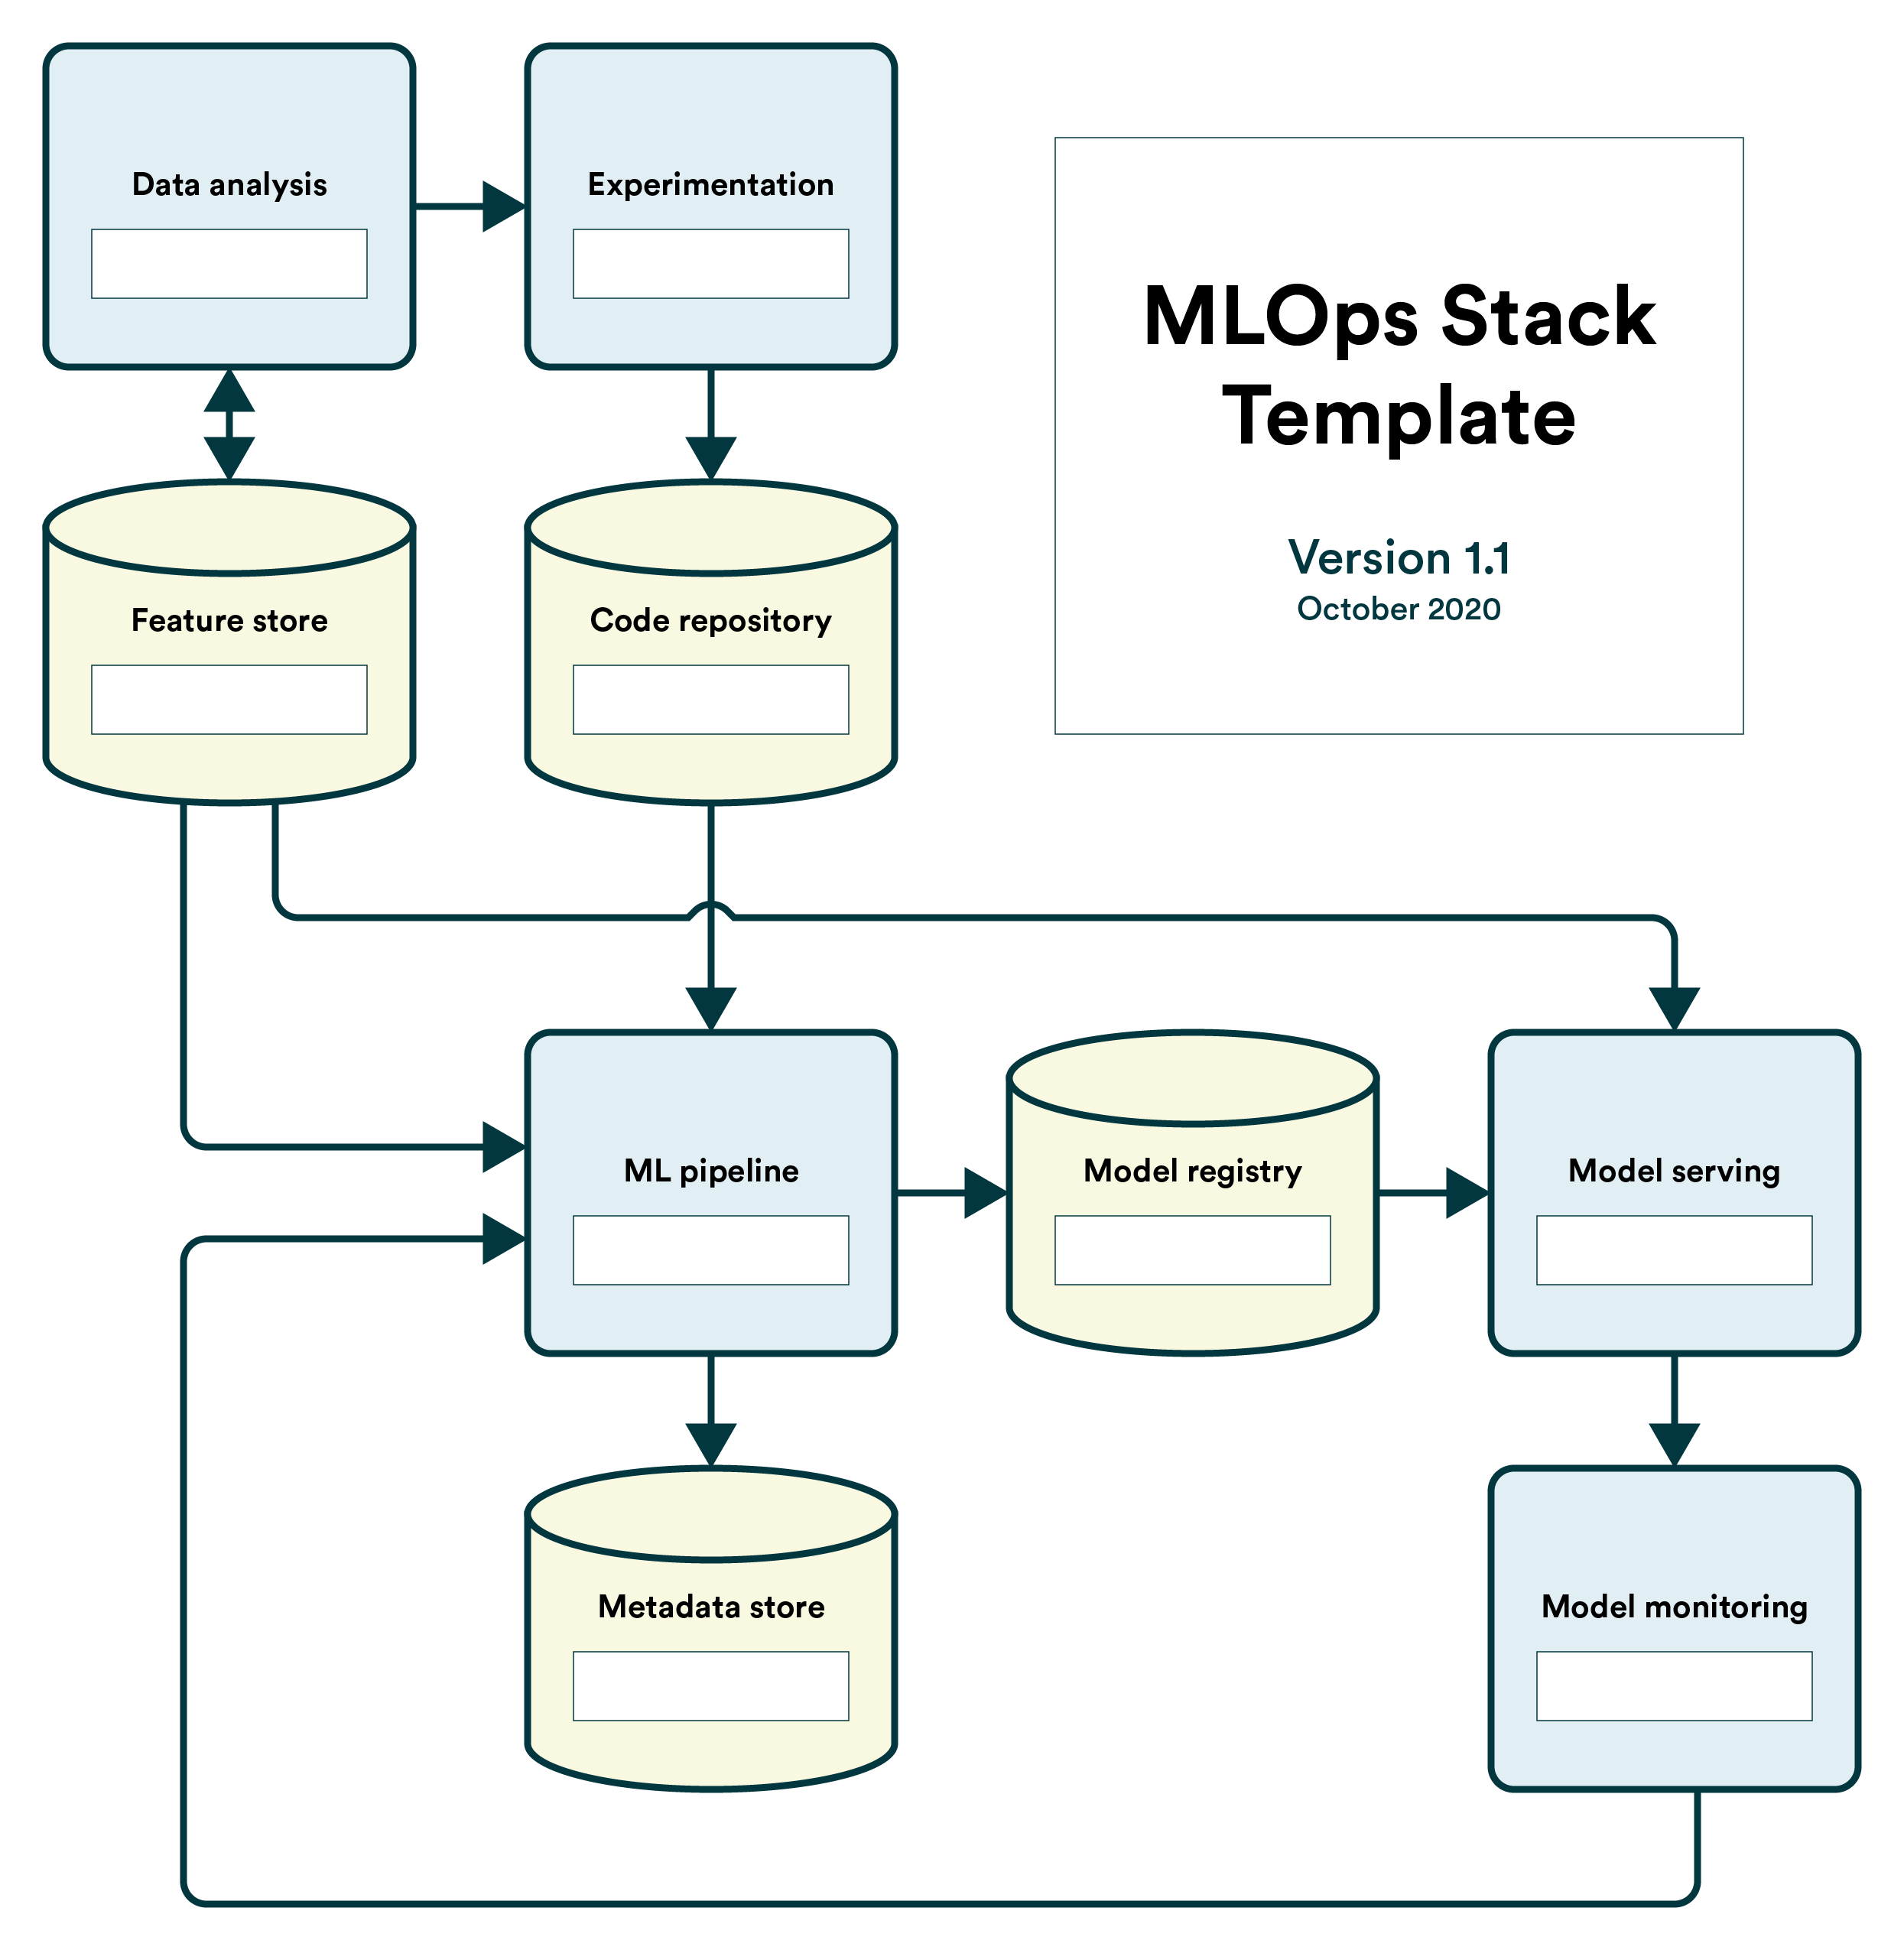 The MLOps Stack